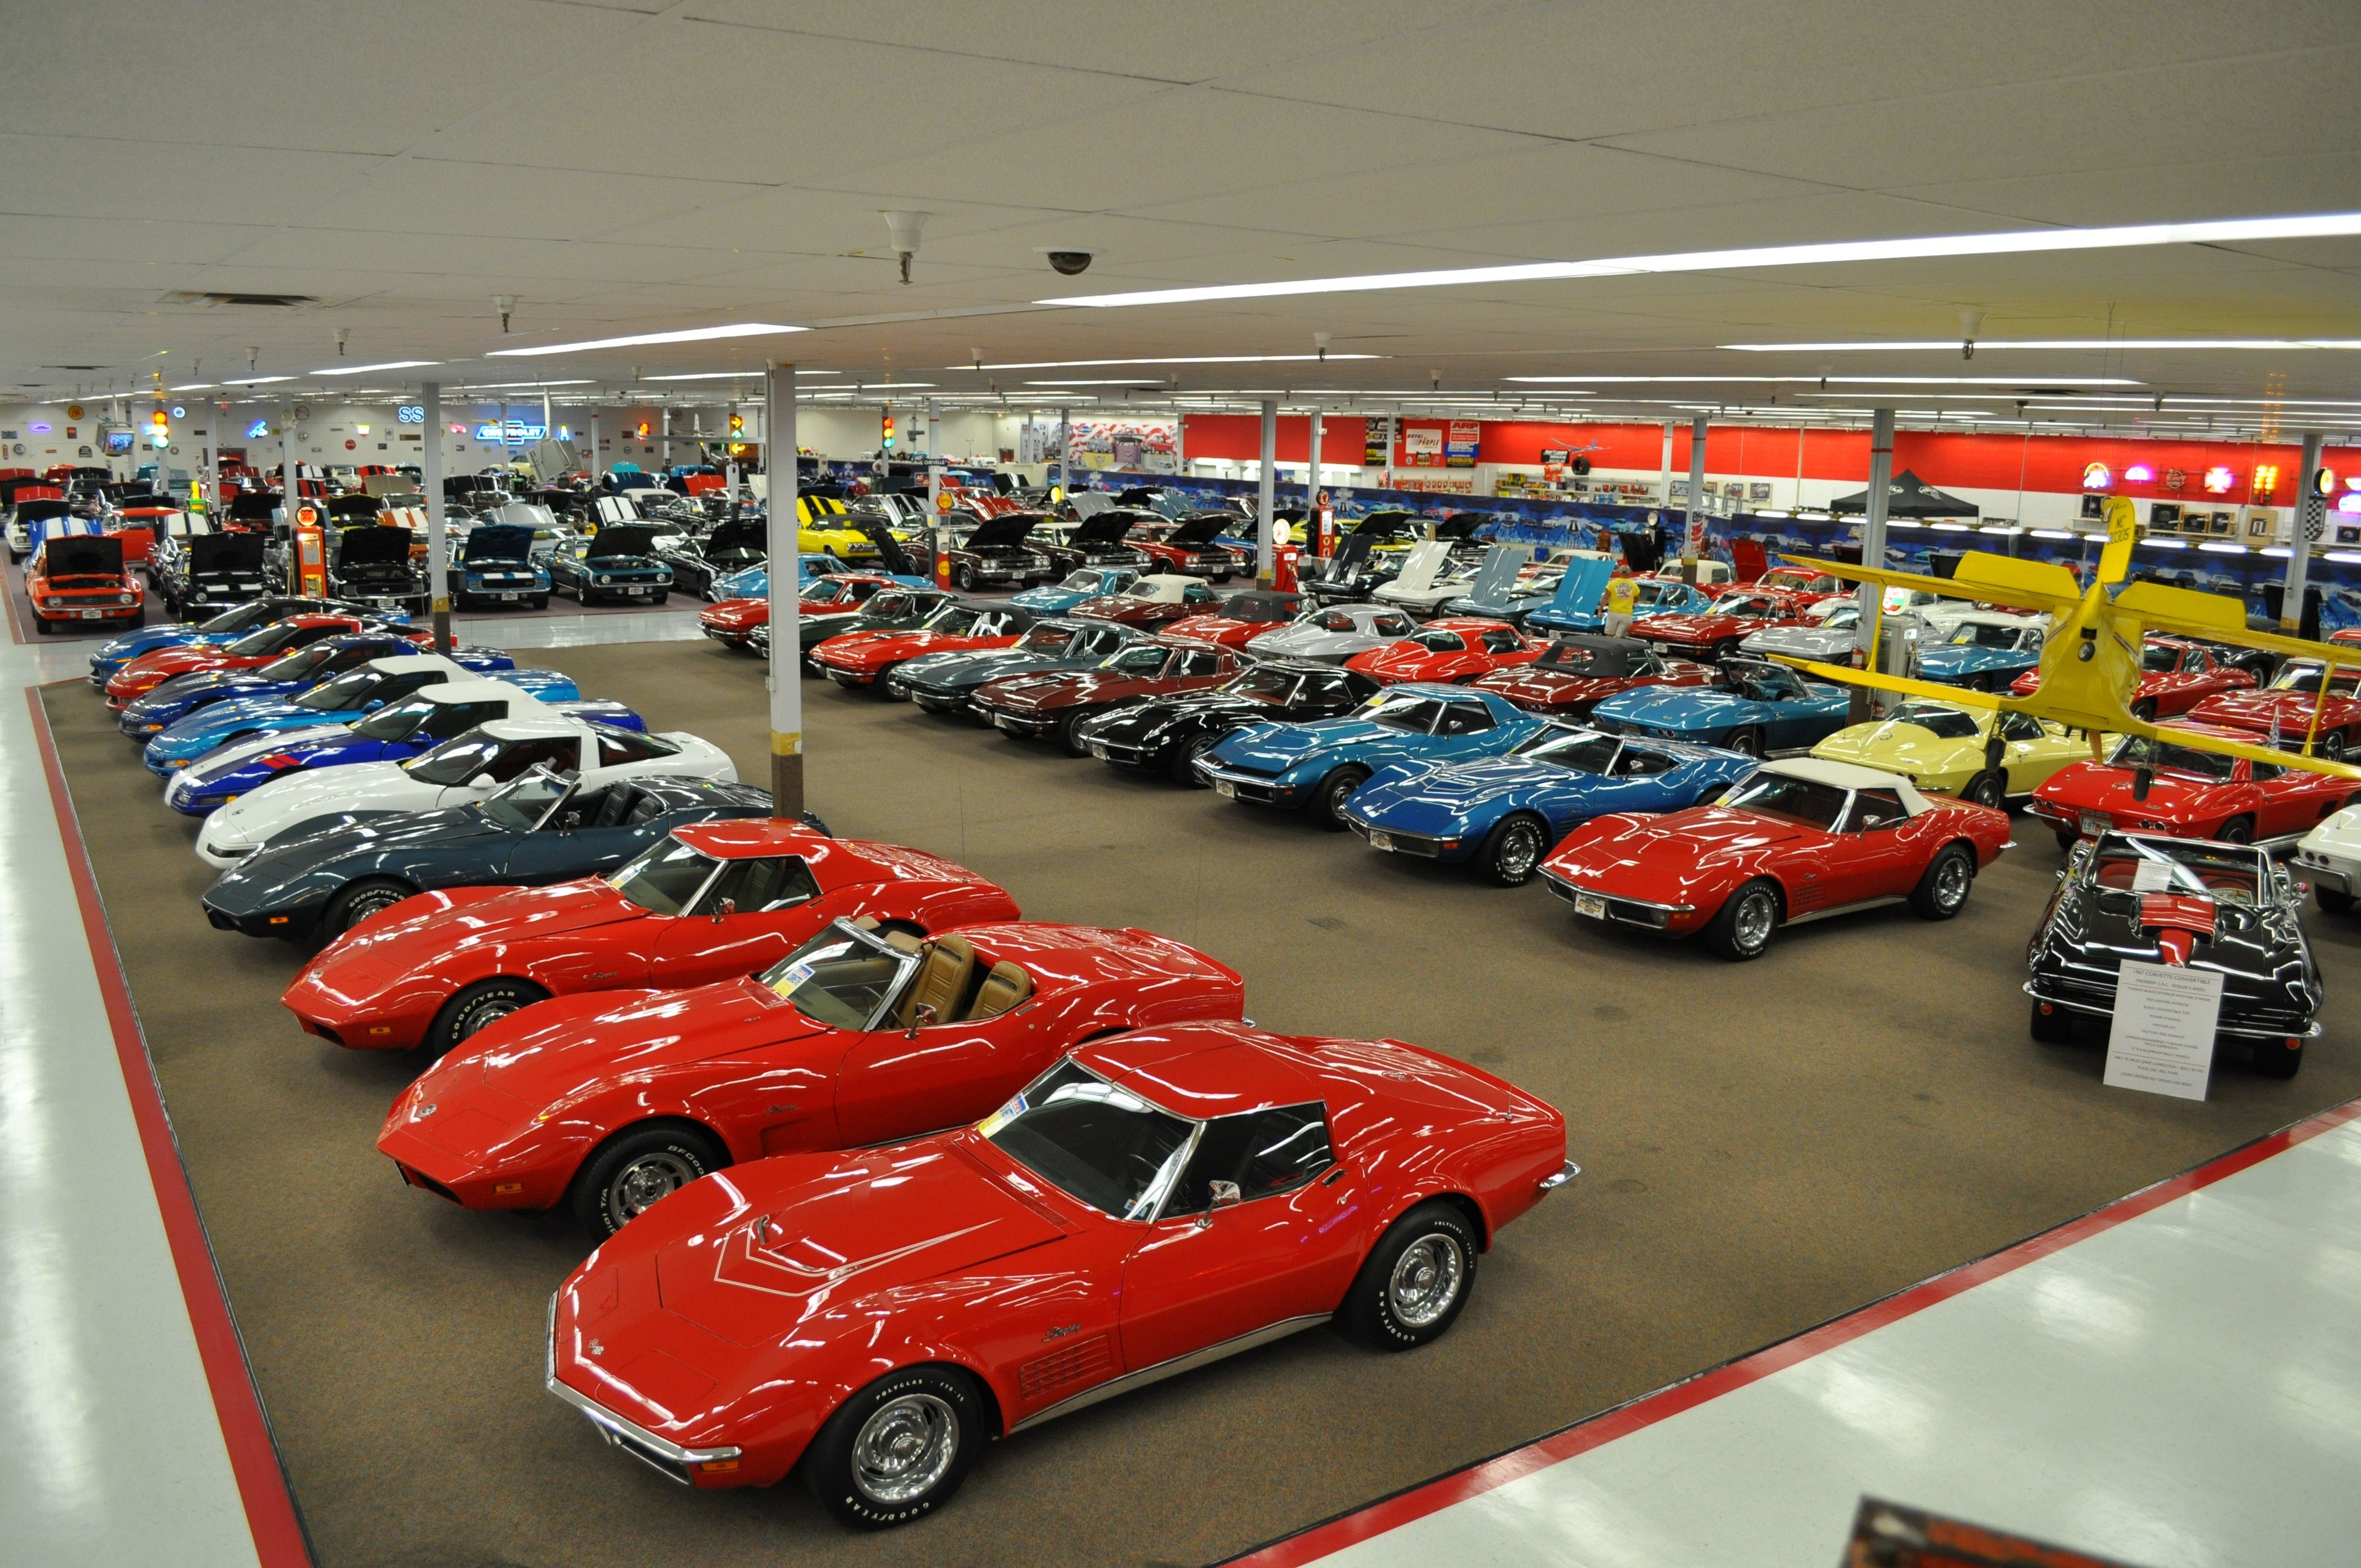 Rick Treworgy S Muscle Car City Has Over 99 000 Squarefeet Of Cars